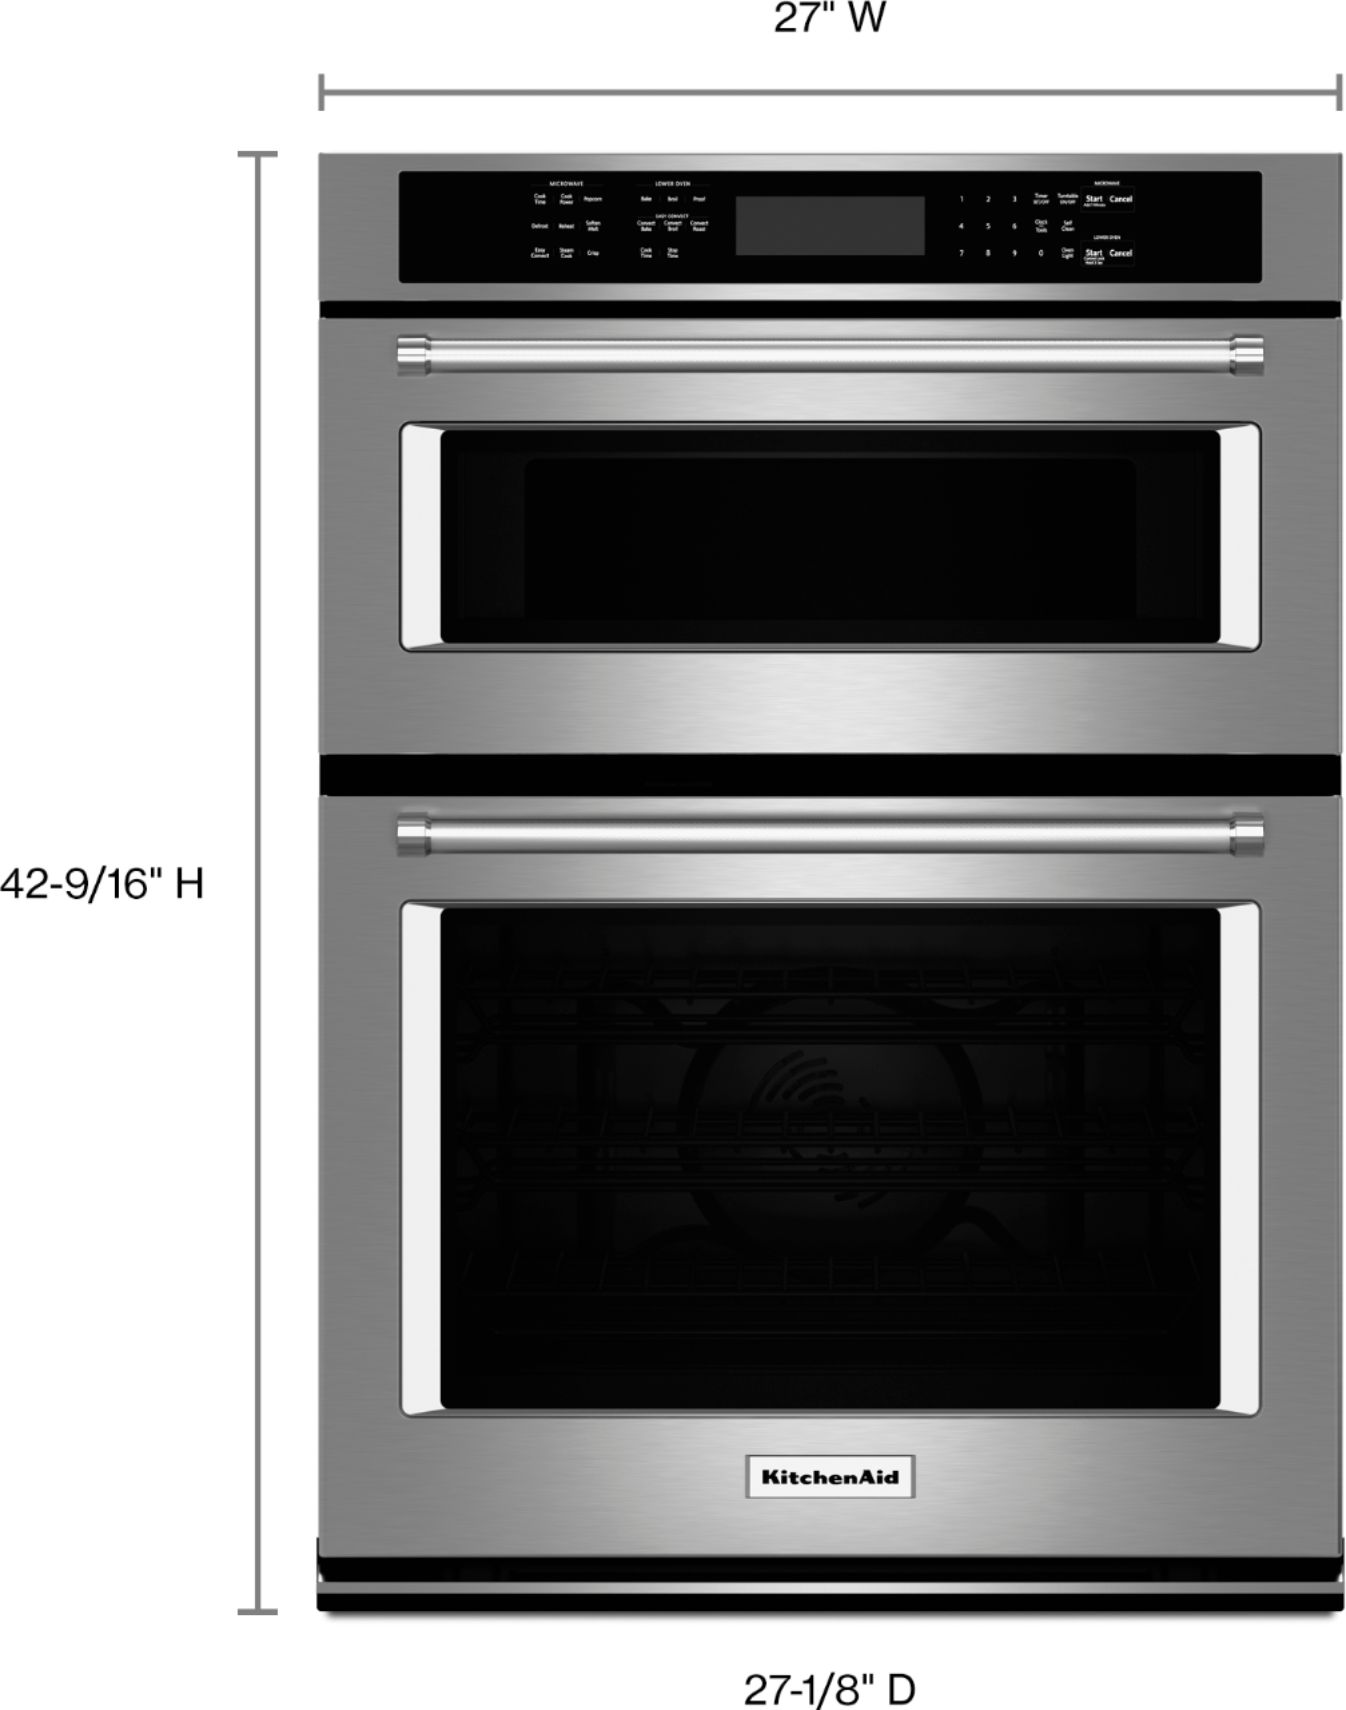 kitchenaid 27 single electric convection wall oven with built in microwave stainless steel